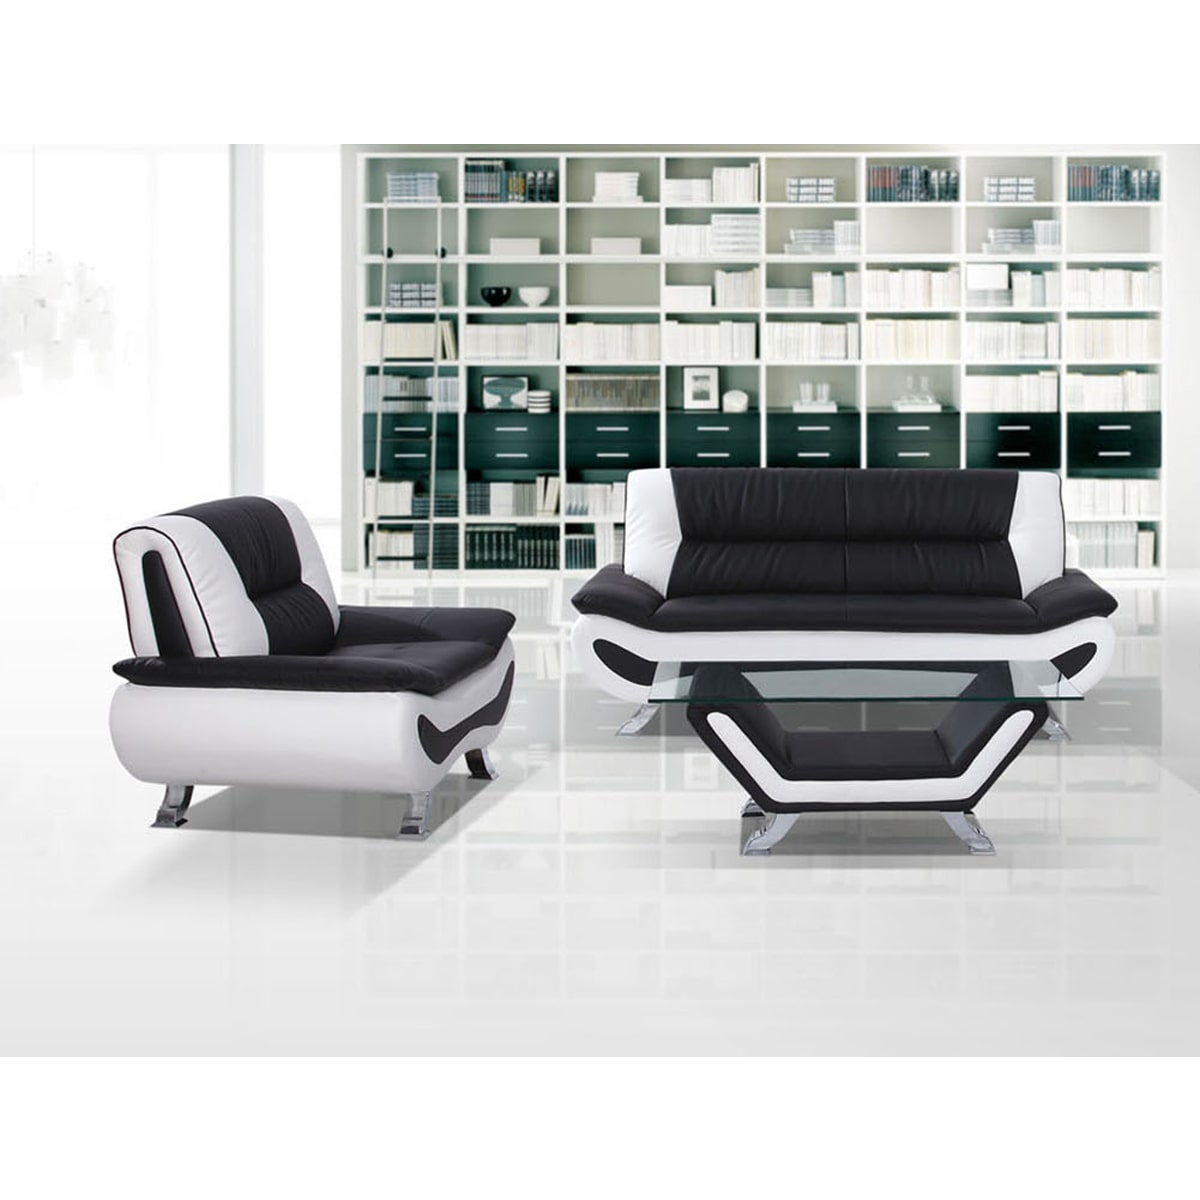 US Furnishing Express Arianna Modern Faux-leather 2-piece Living Room Sofa and Loveseat Set